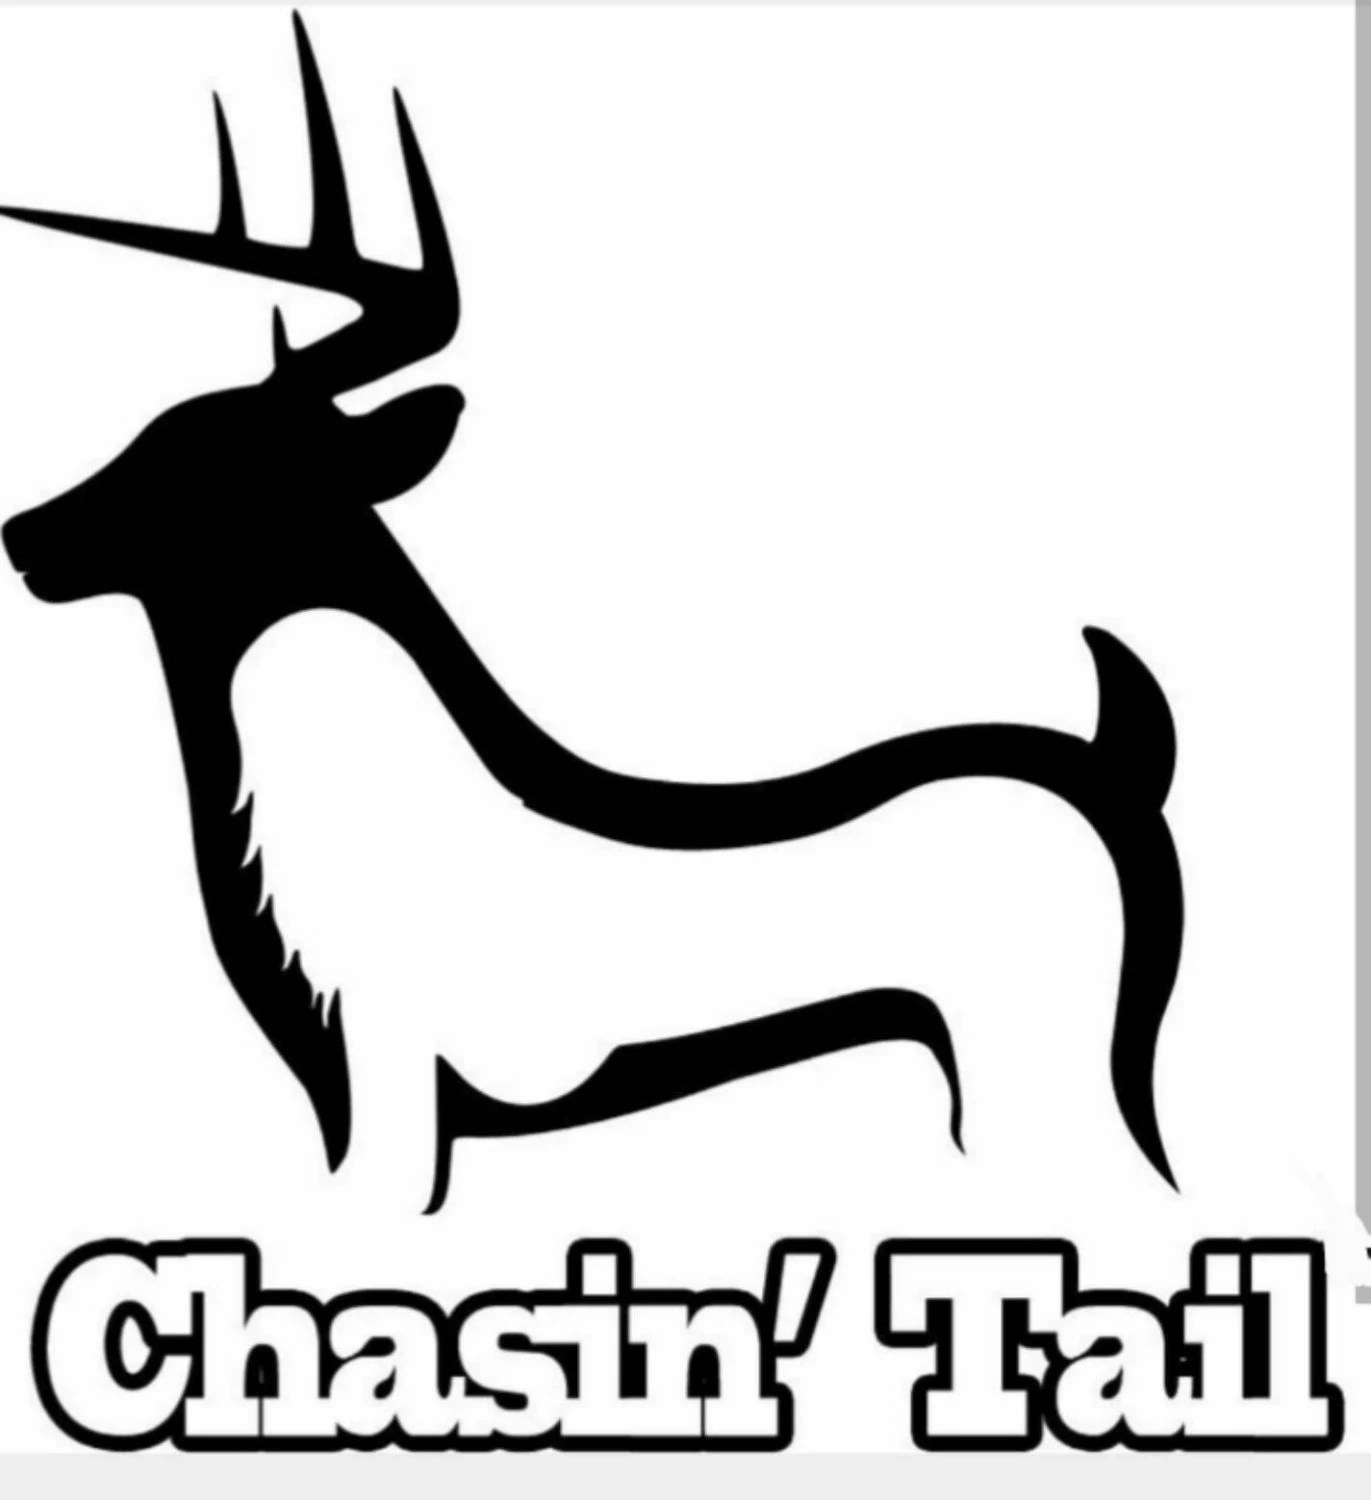 Hunting And Fishing Chasin Tail Decal 6x6 By Hannahsvinyl